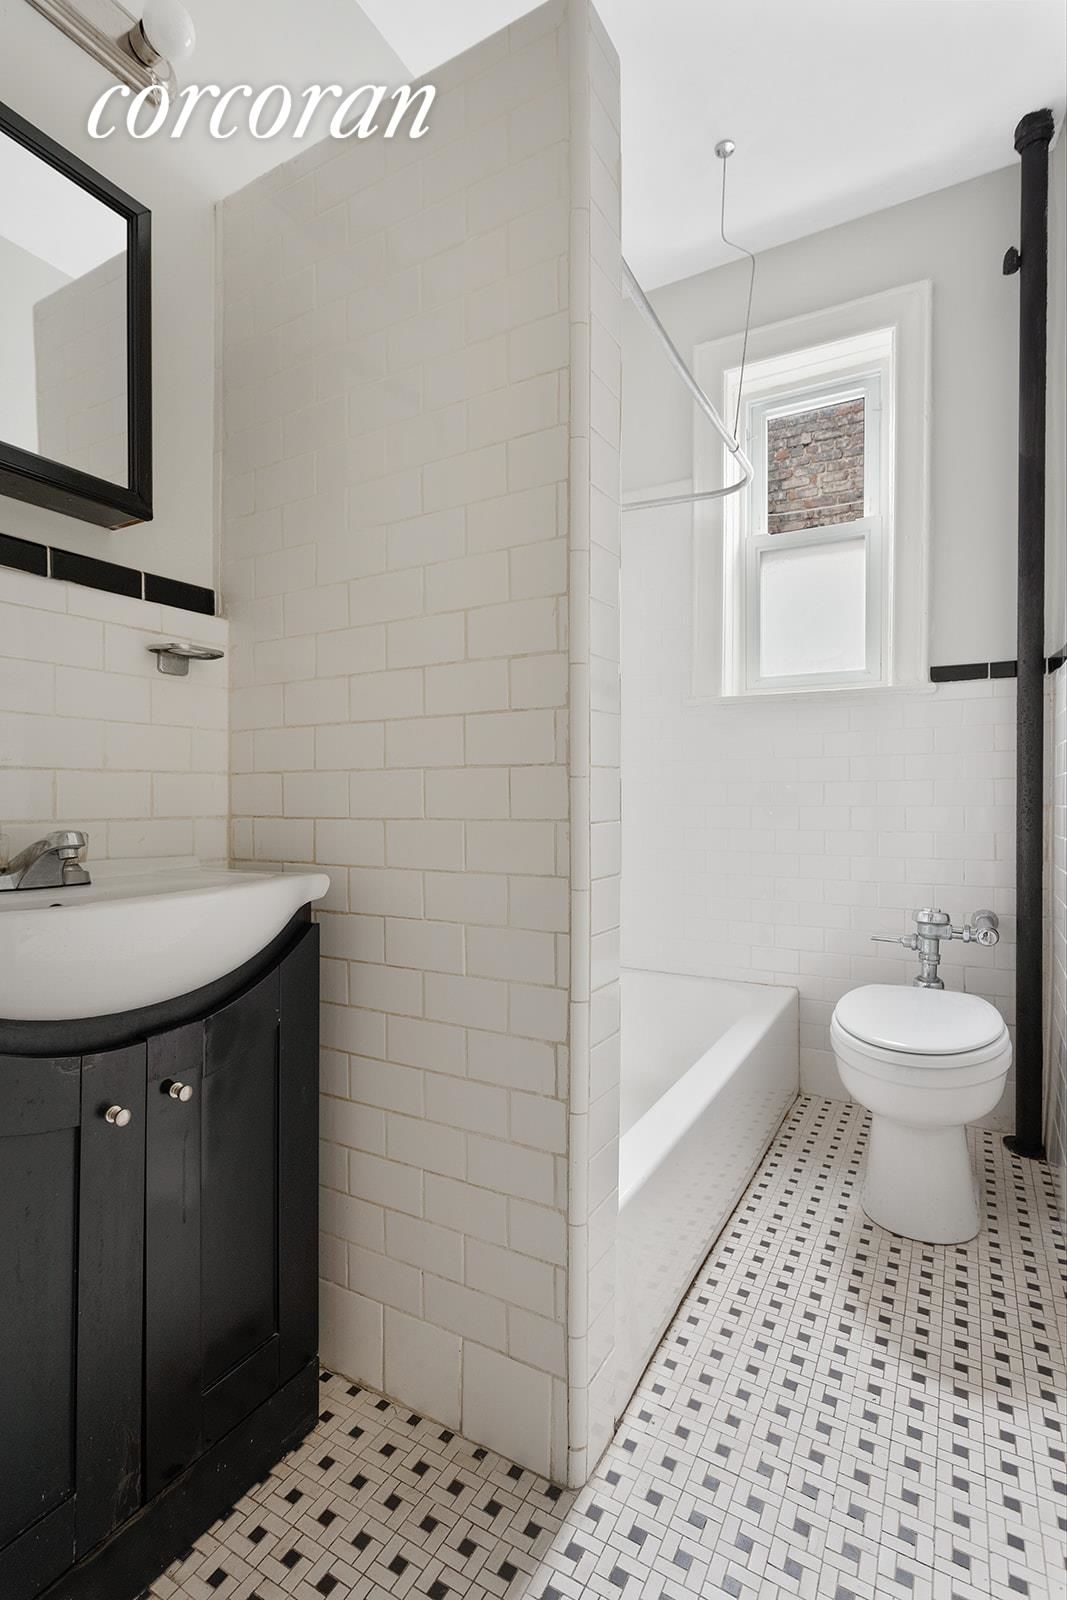 566 Osborn St Photo 1 - NYC-Real-Estate-681128